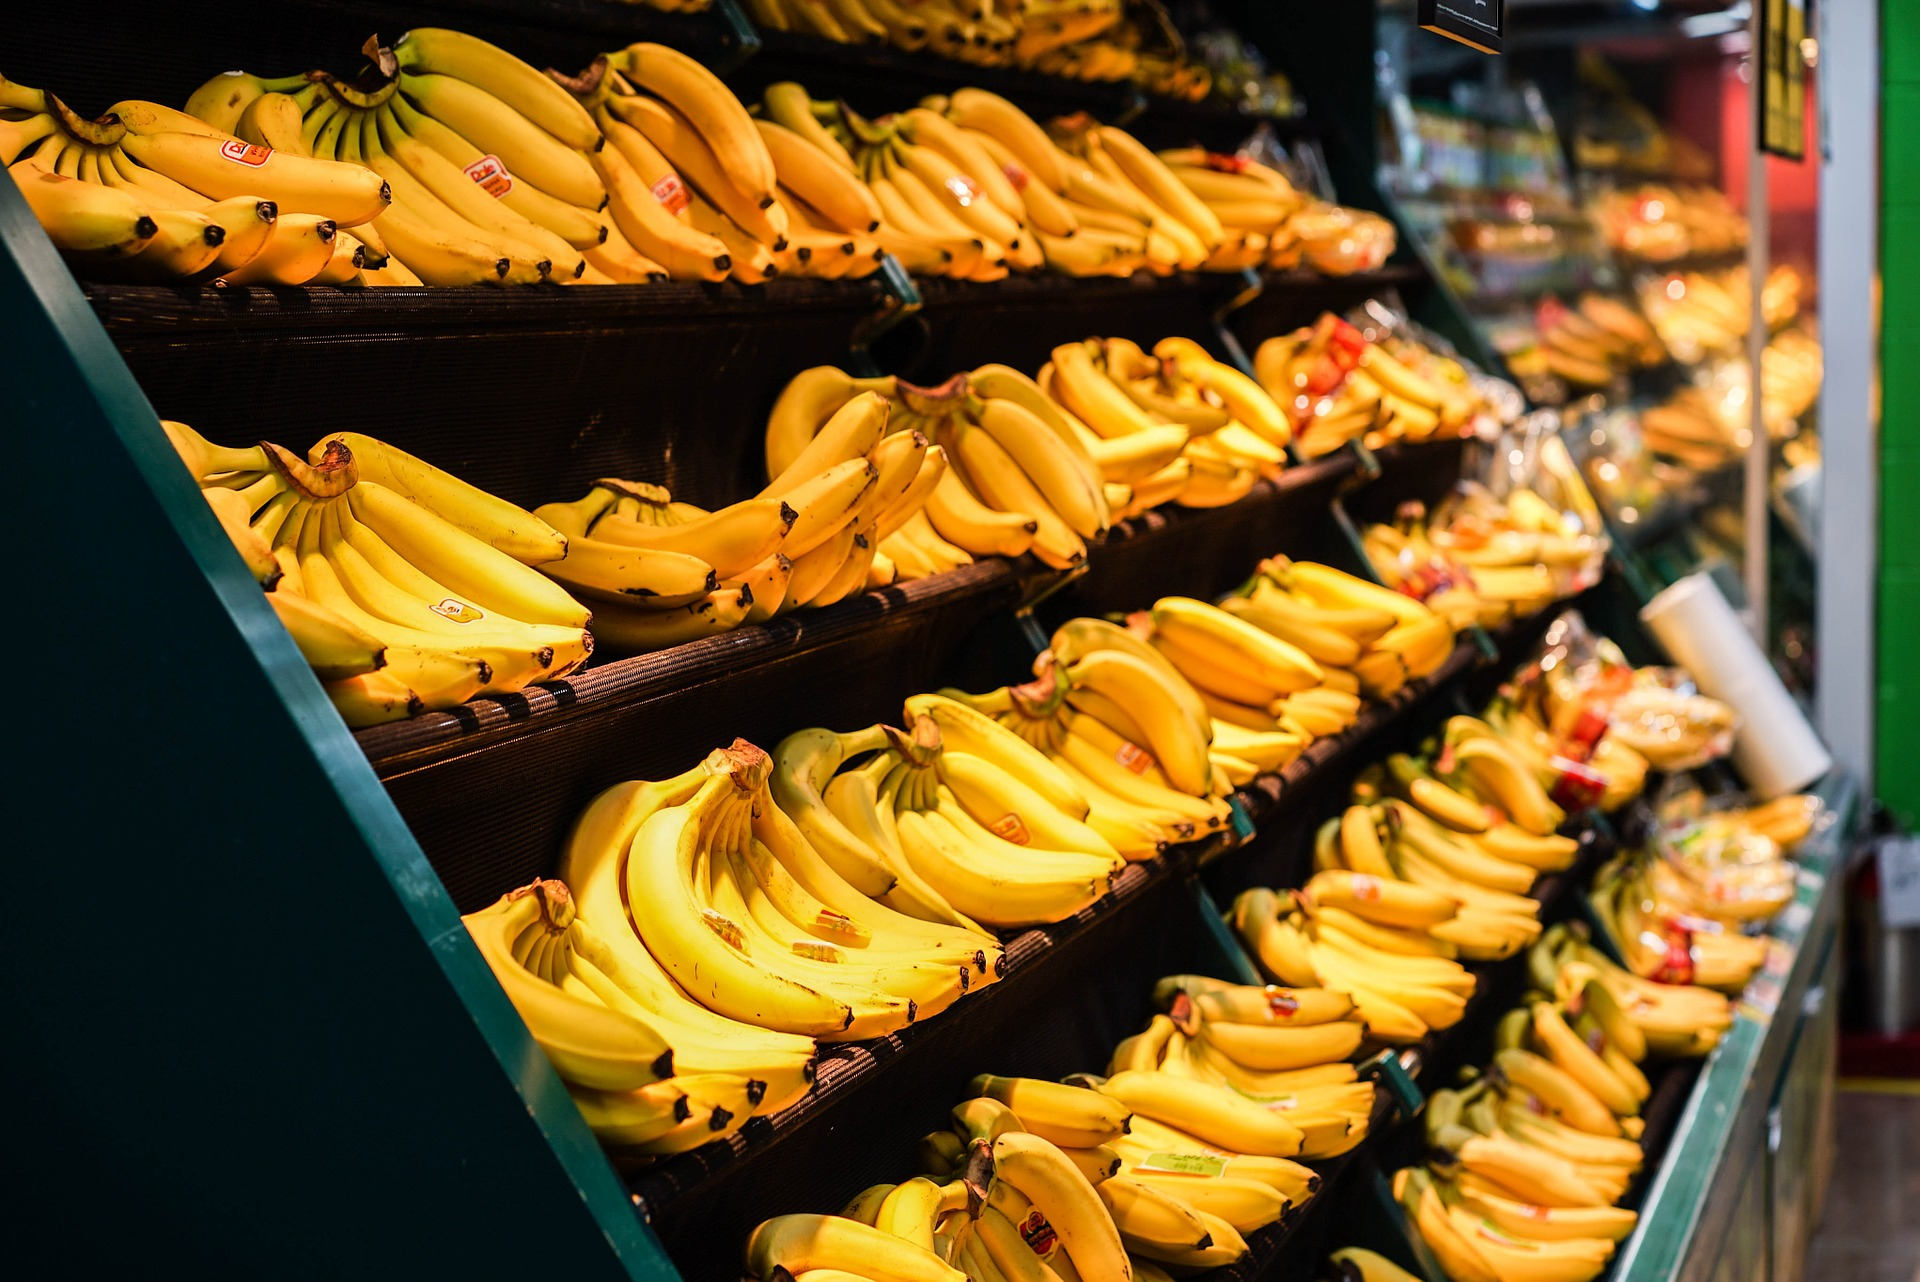 A bunch of bananas on a shelf at a store